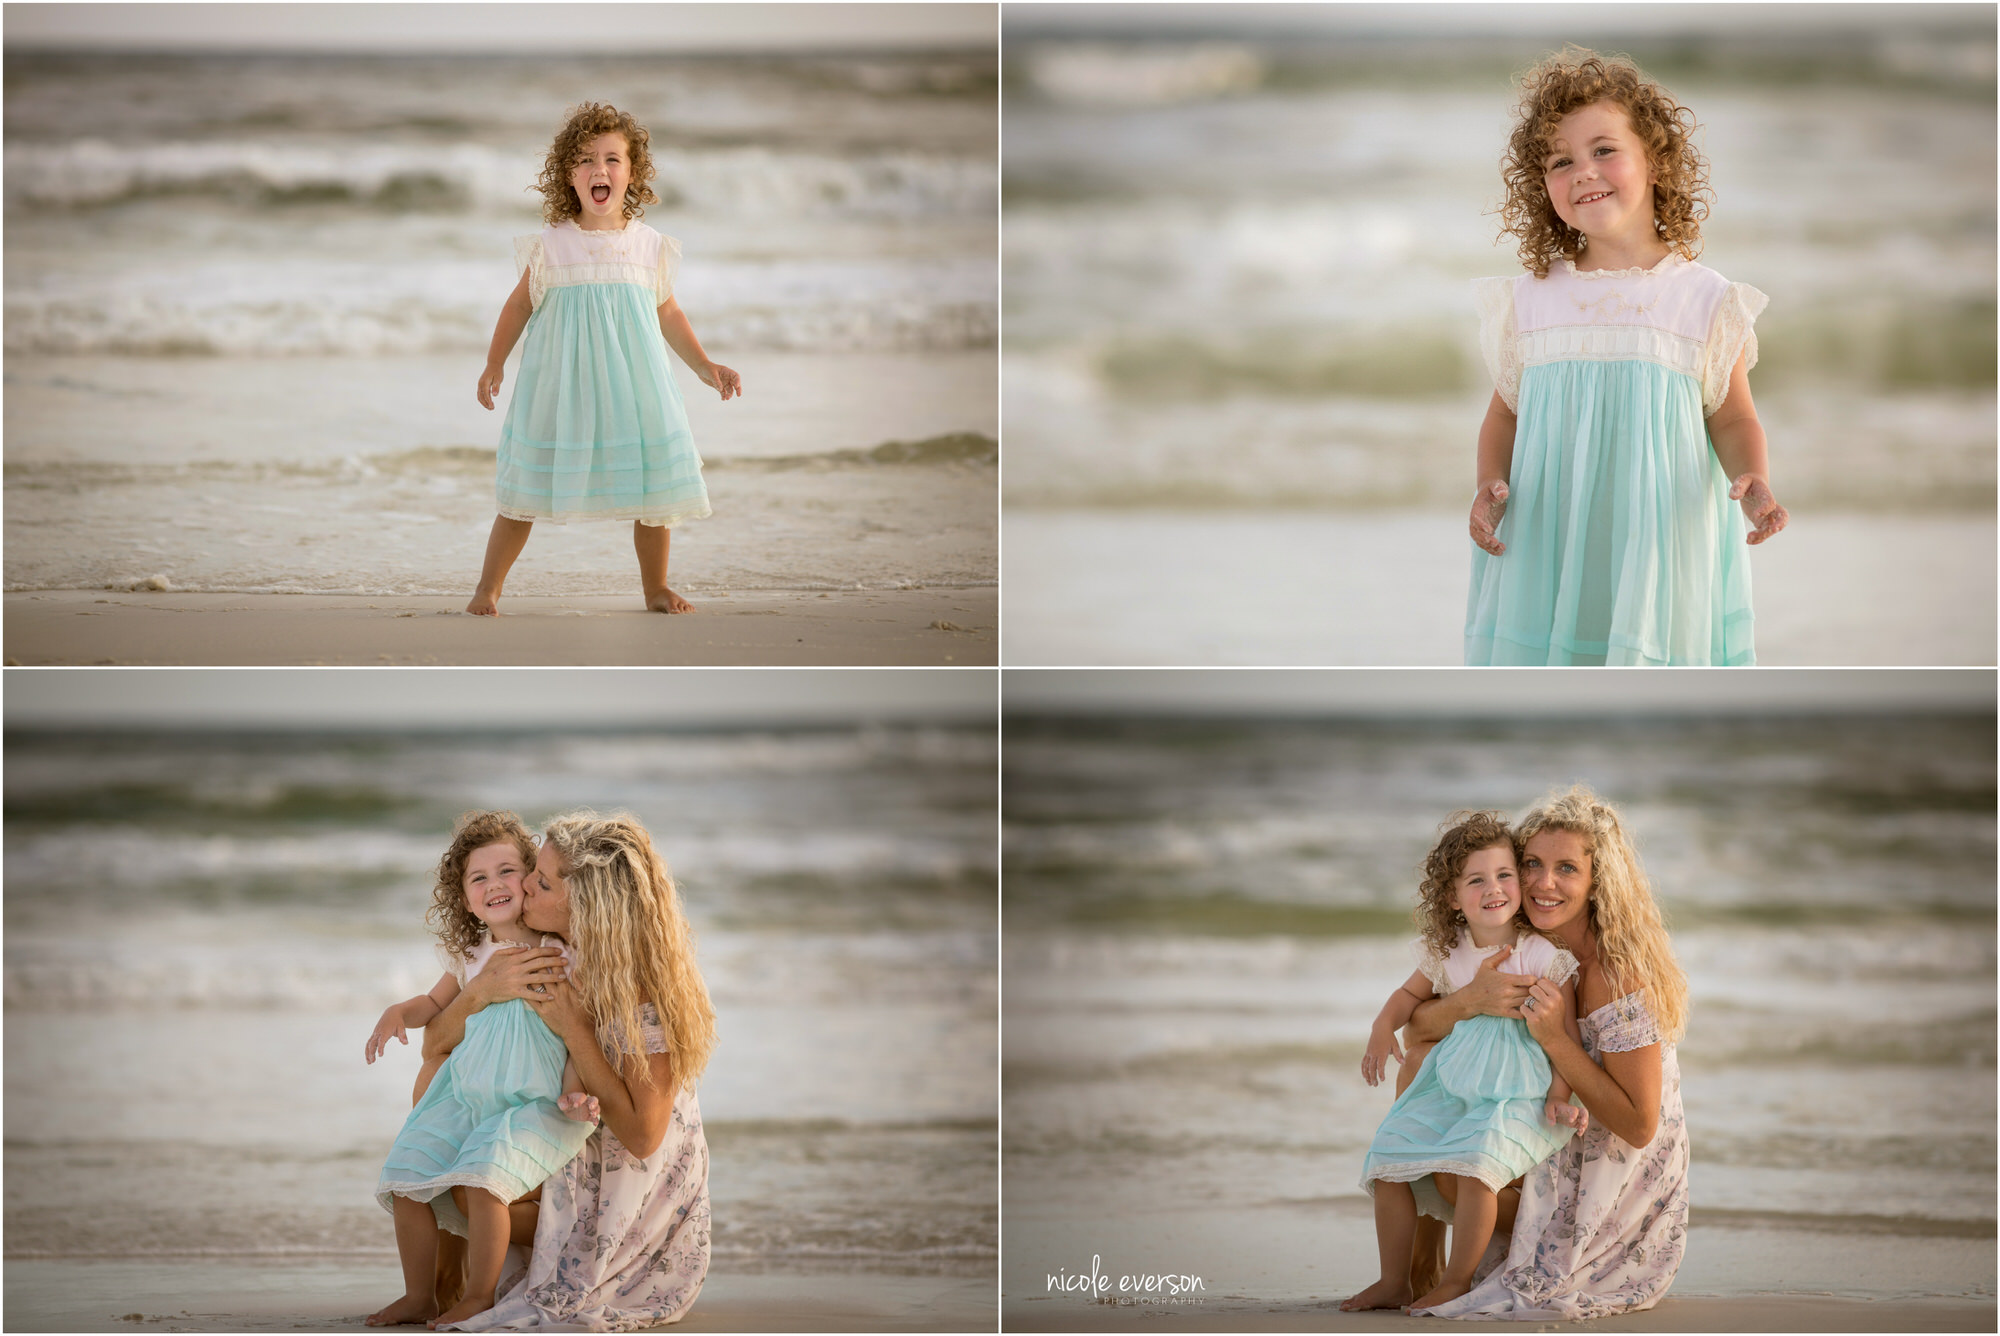 Mom and daughter play together on Watercolor Inn Beach. Photographed by Nicole Everson Photography.